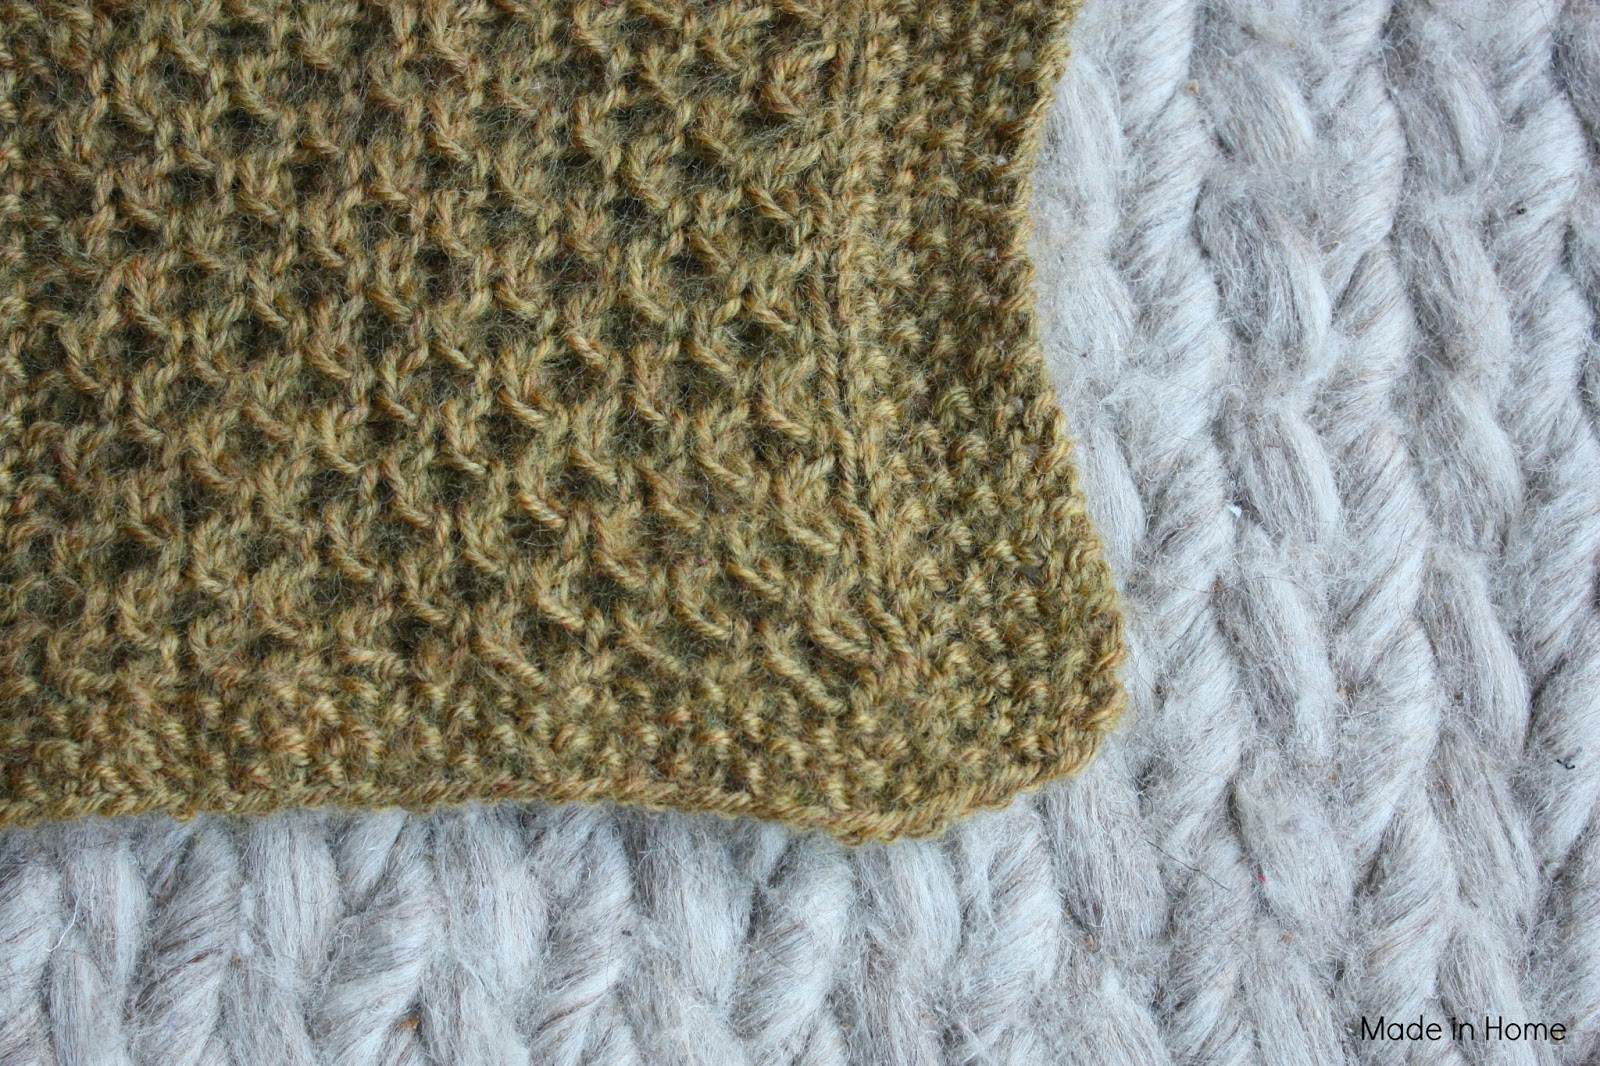 Made in Home: Study of honeycomb :: Knitting ::